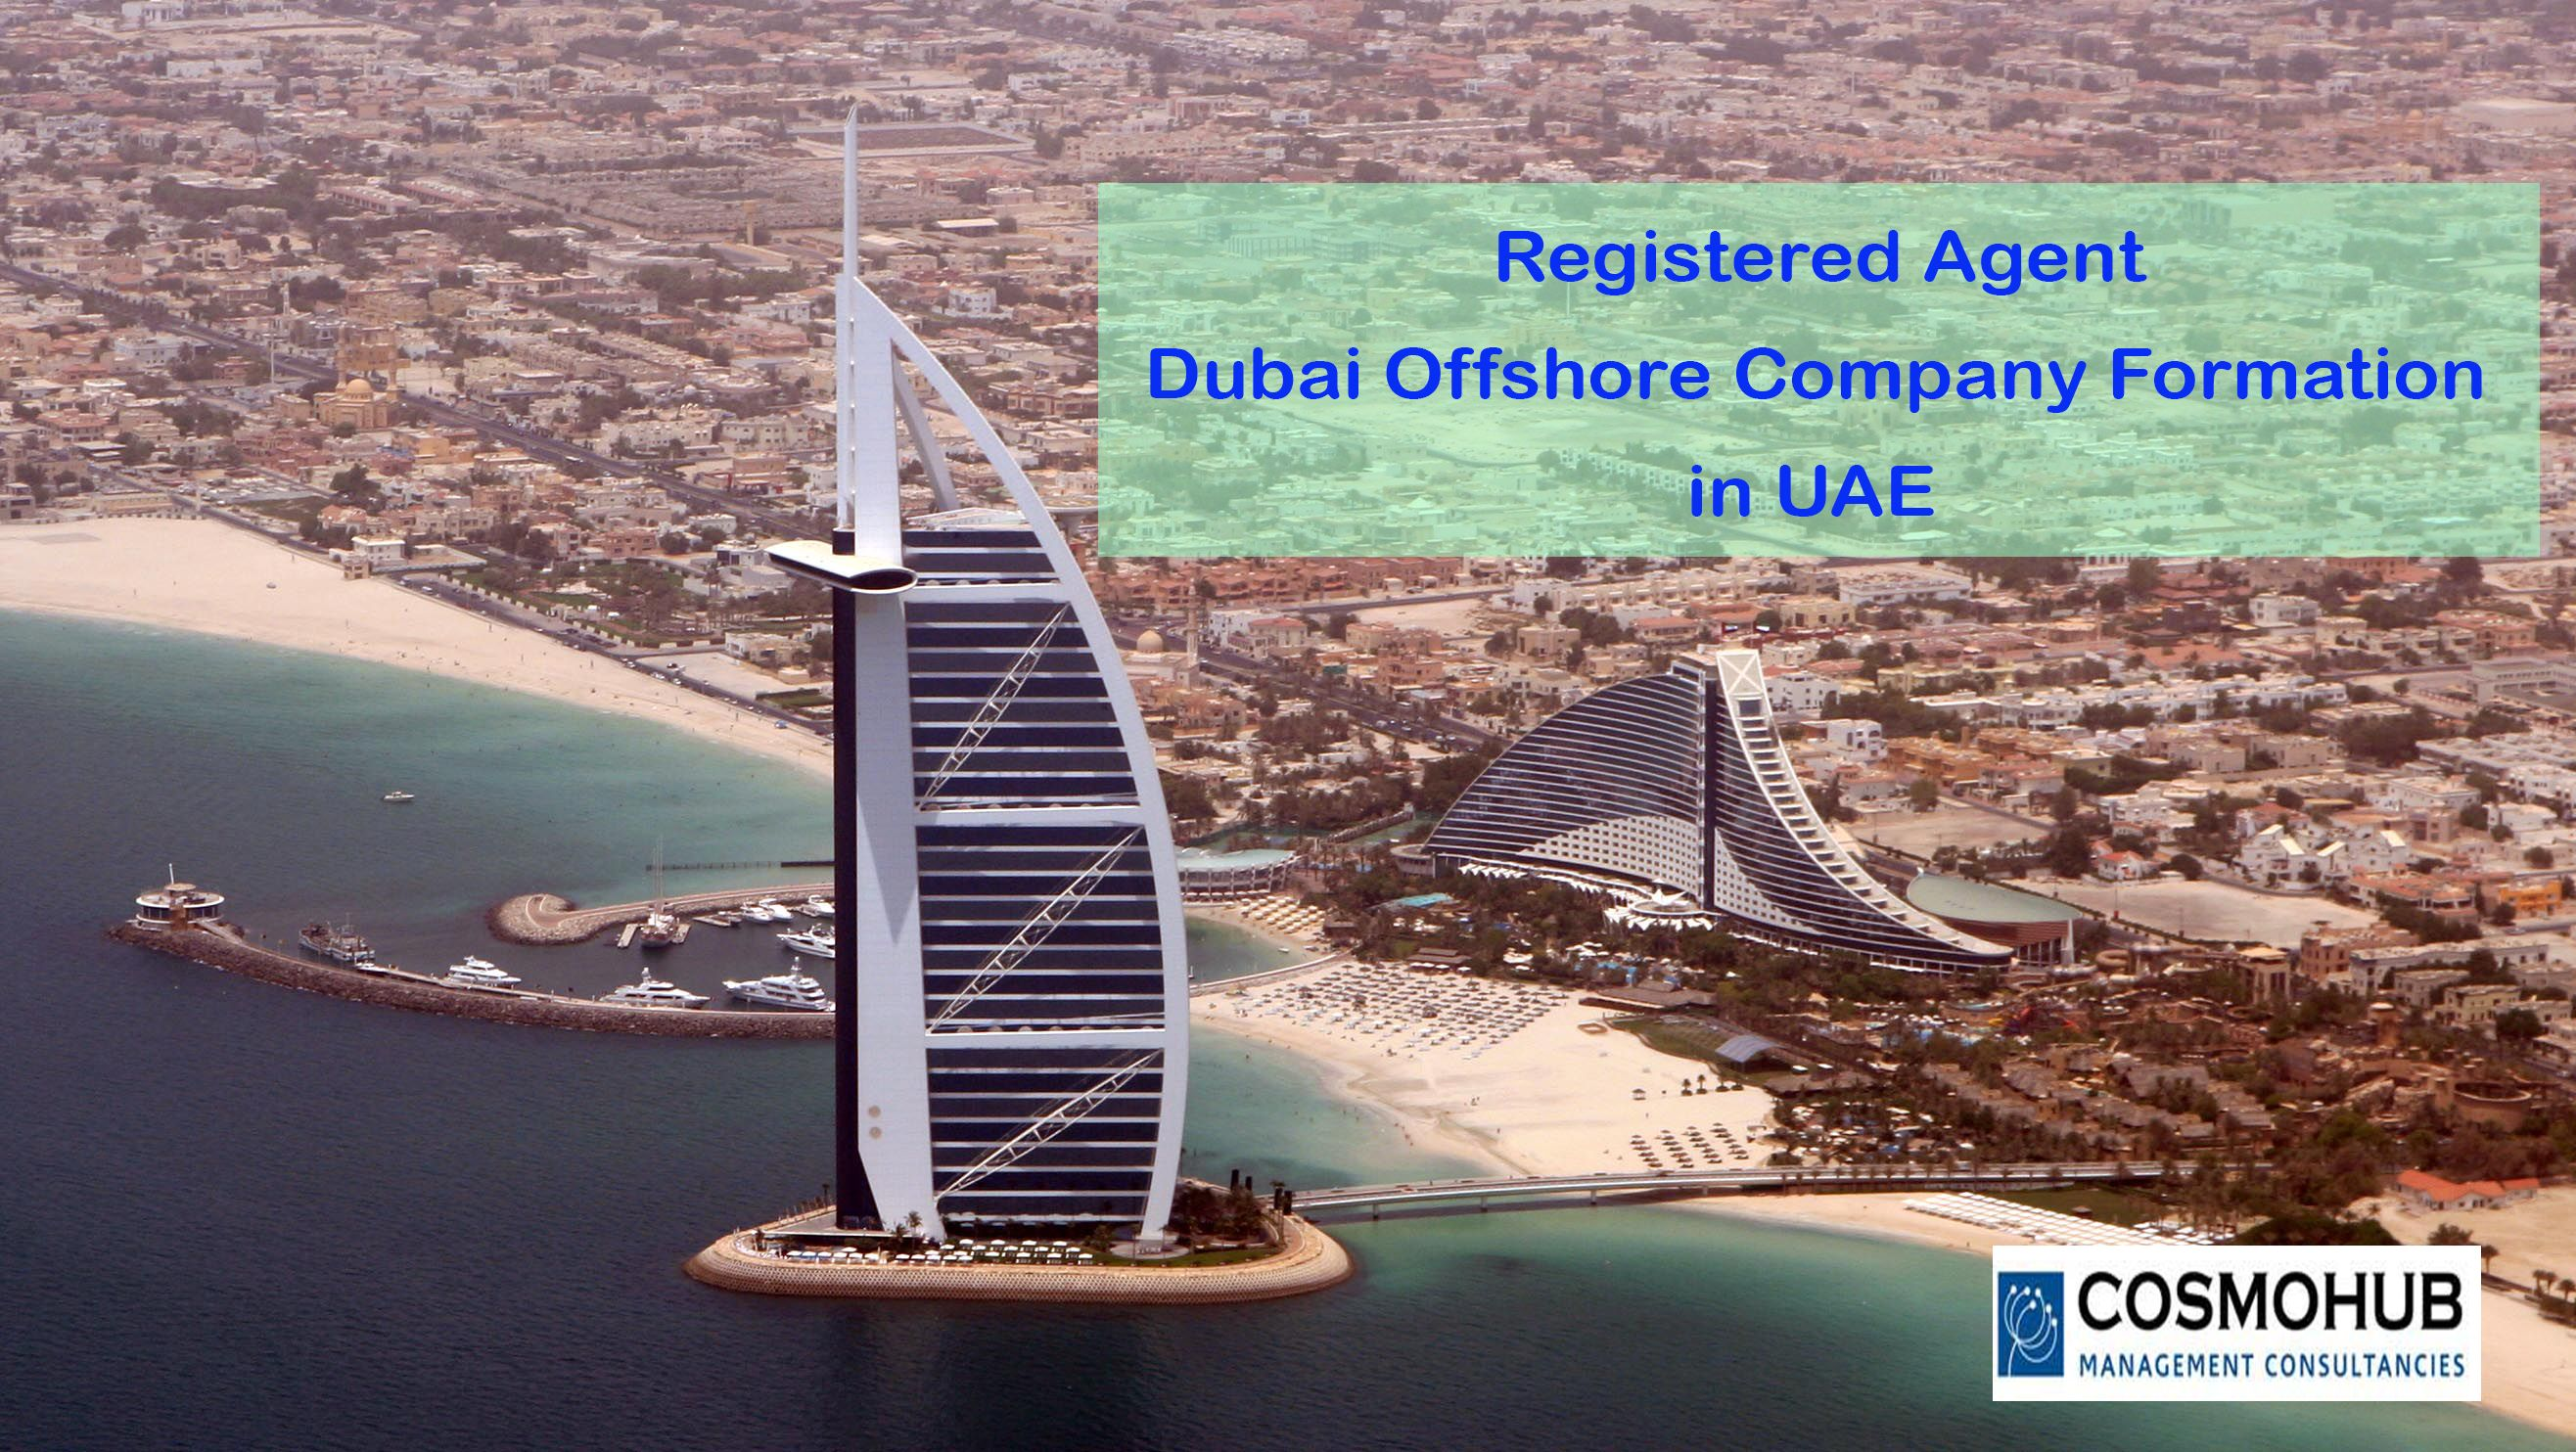 Dubai company formation cosmohub we are a registered